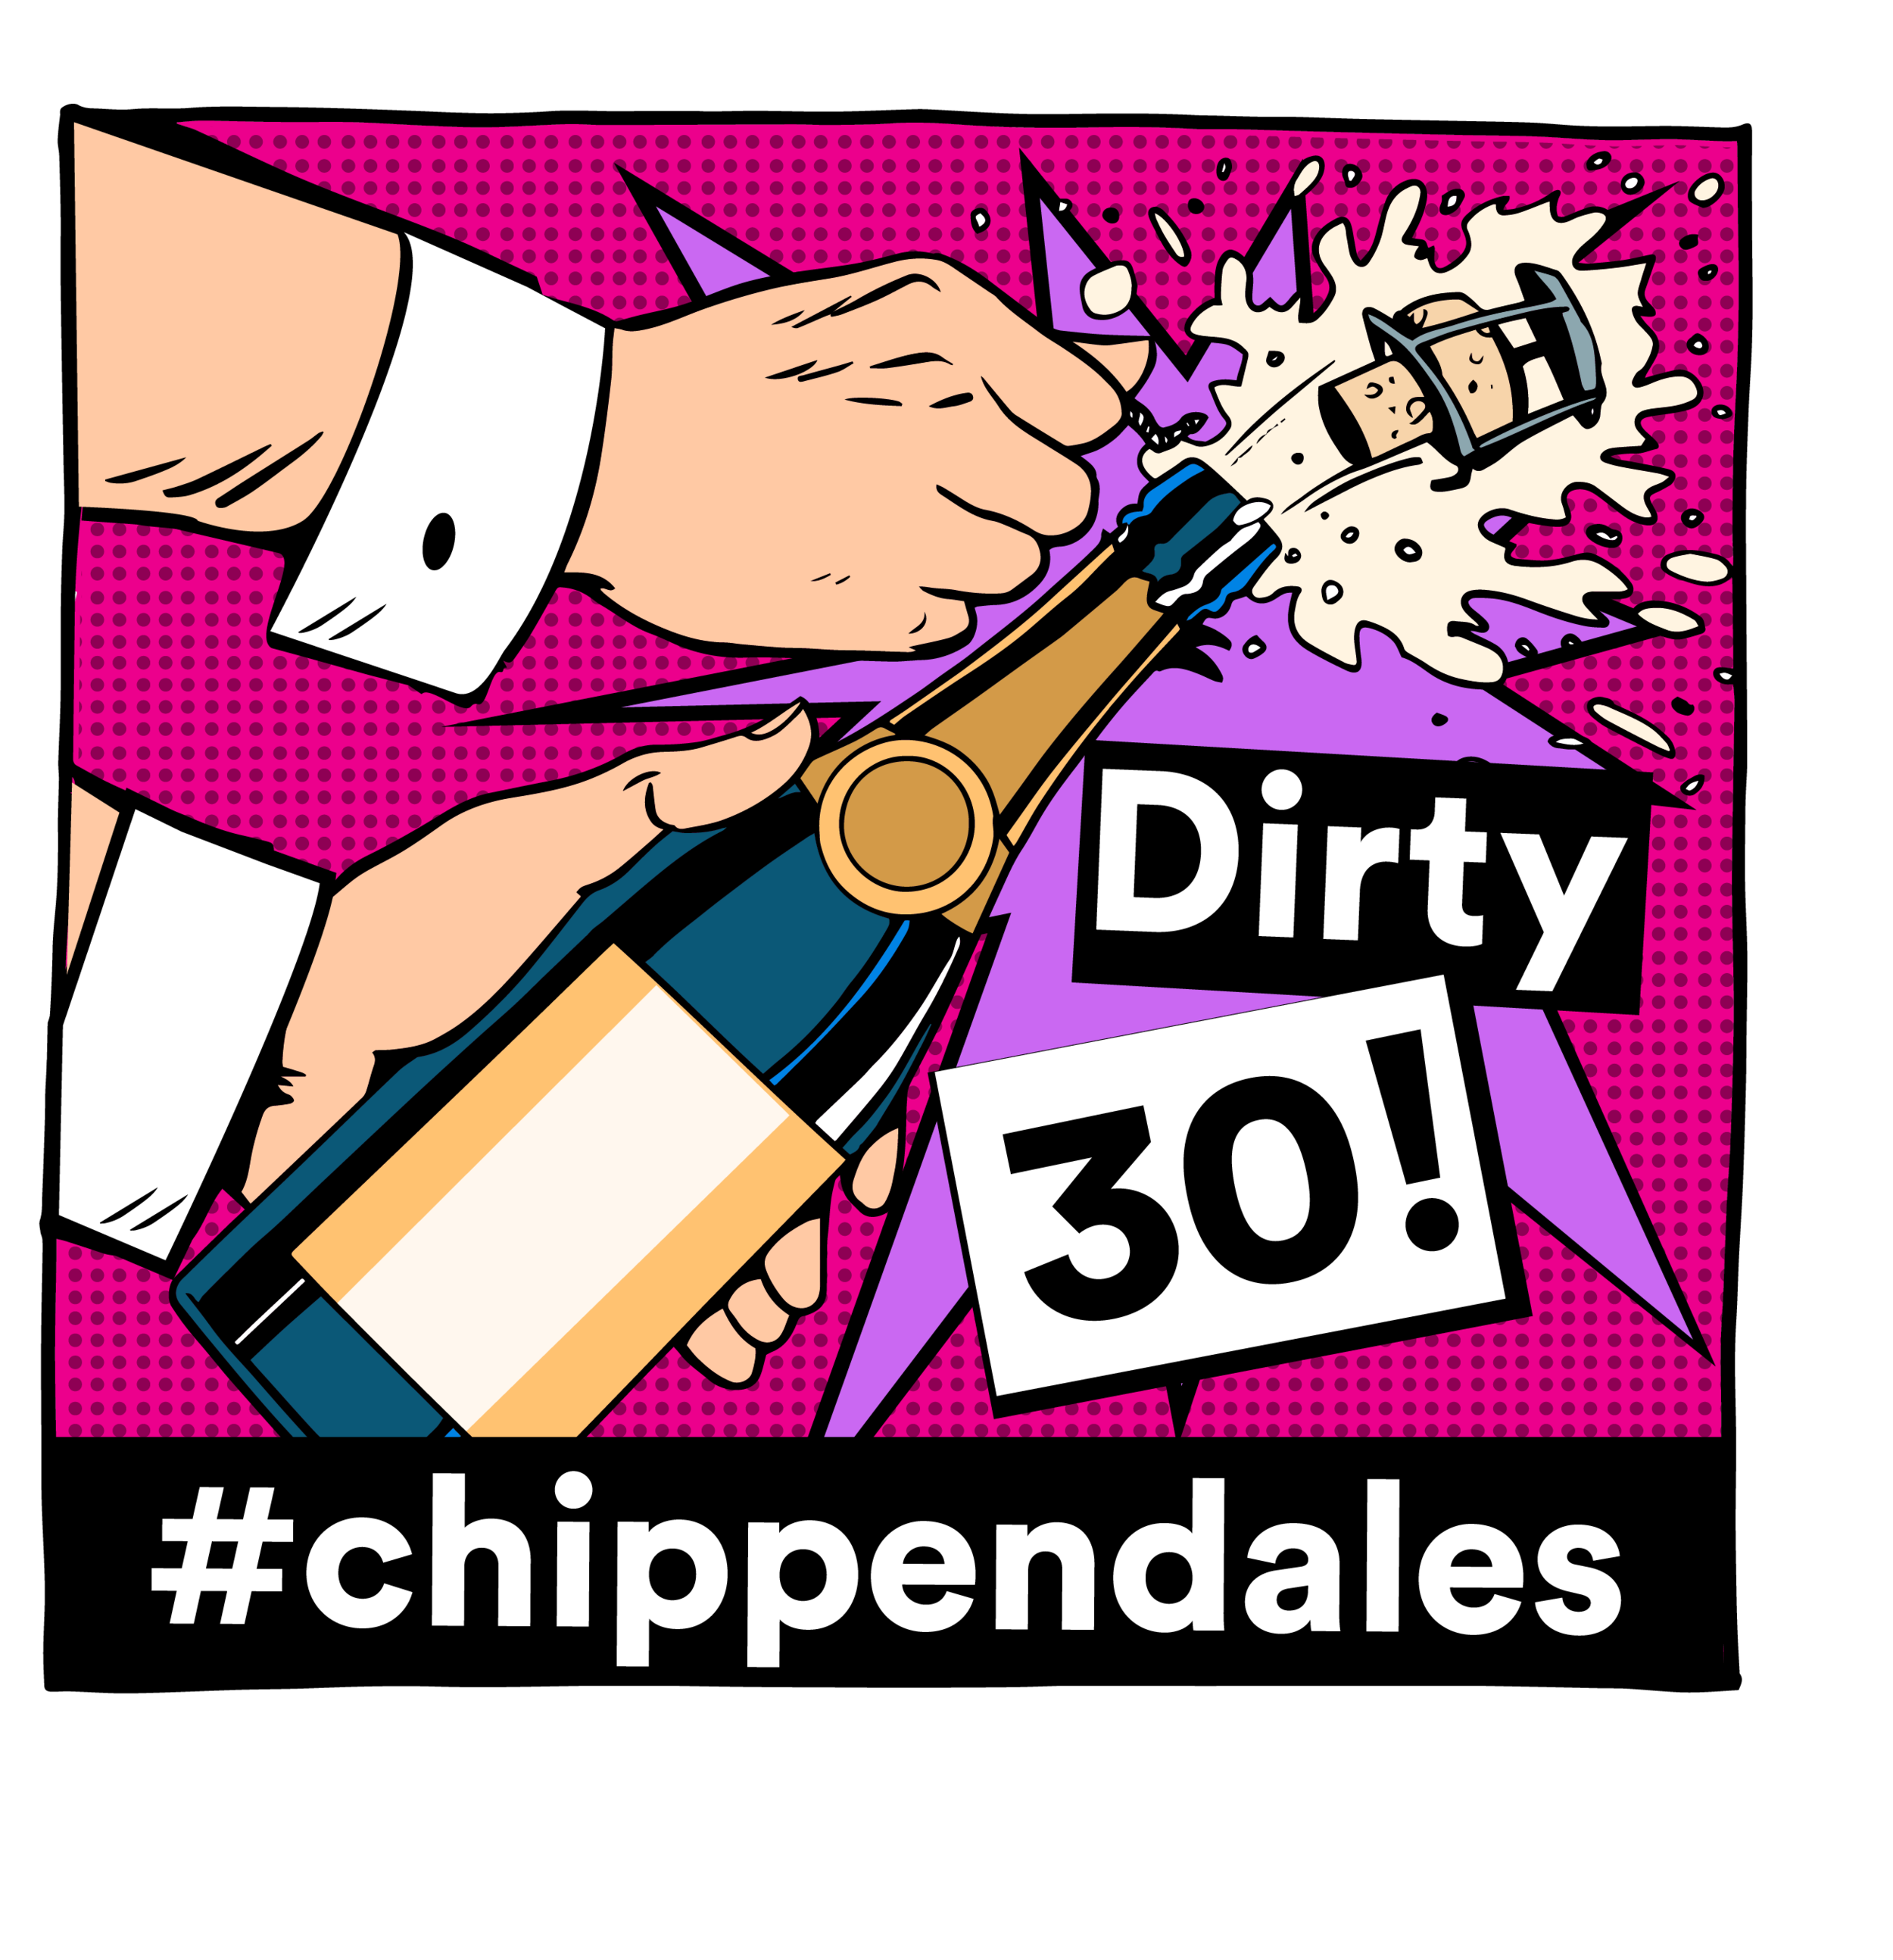 Champagnedalesdirty30.png